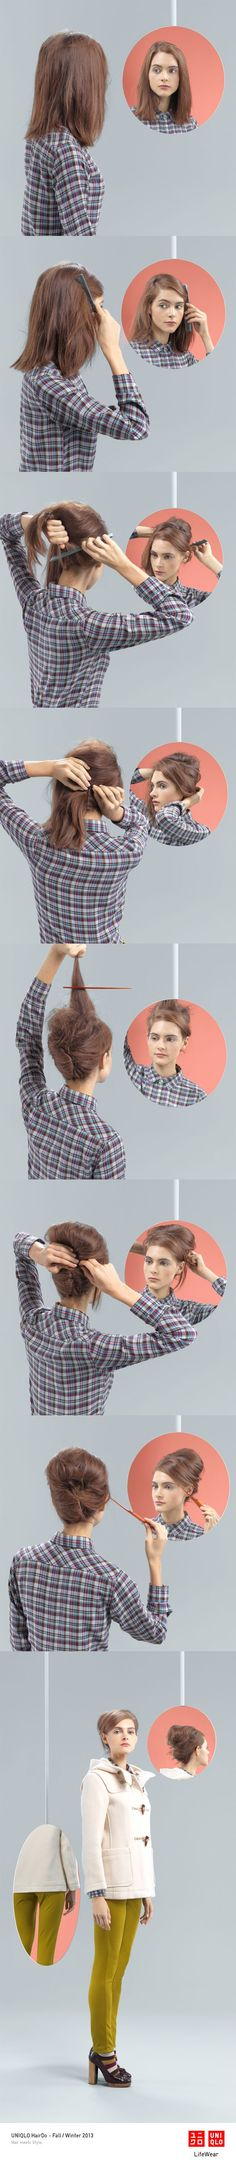 The Side Beehive Updo Hair Hairstyle Diy Uniqlo Hairdo 5 Minute Hairstyles, Up Hairstyles, Pretty Hairstyles, Classic Hairstyles, Coiffure Hair, Great Hair, Hair Today, Hair Dos, Hair Hacks